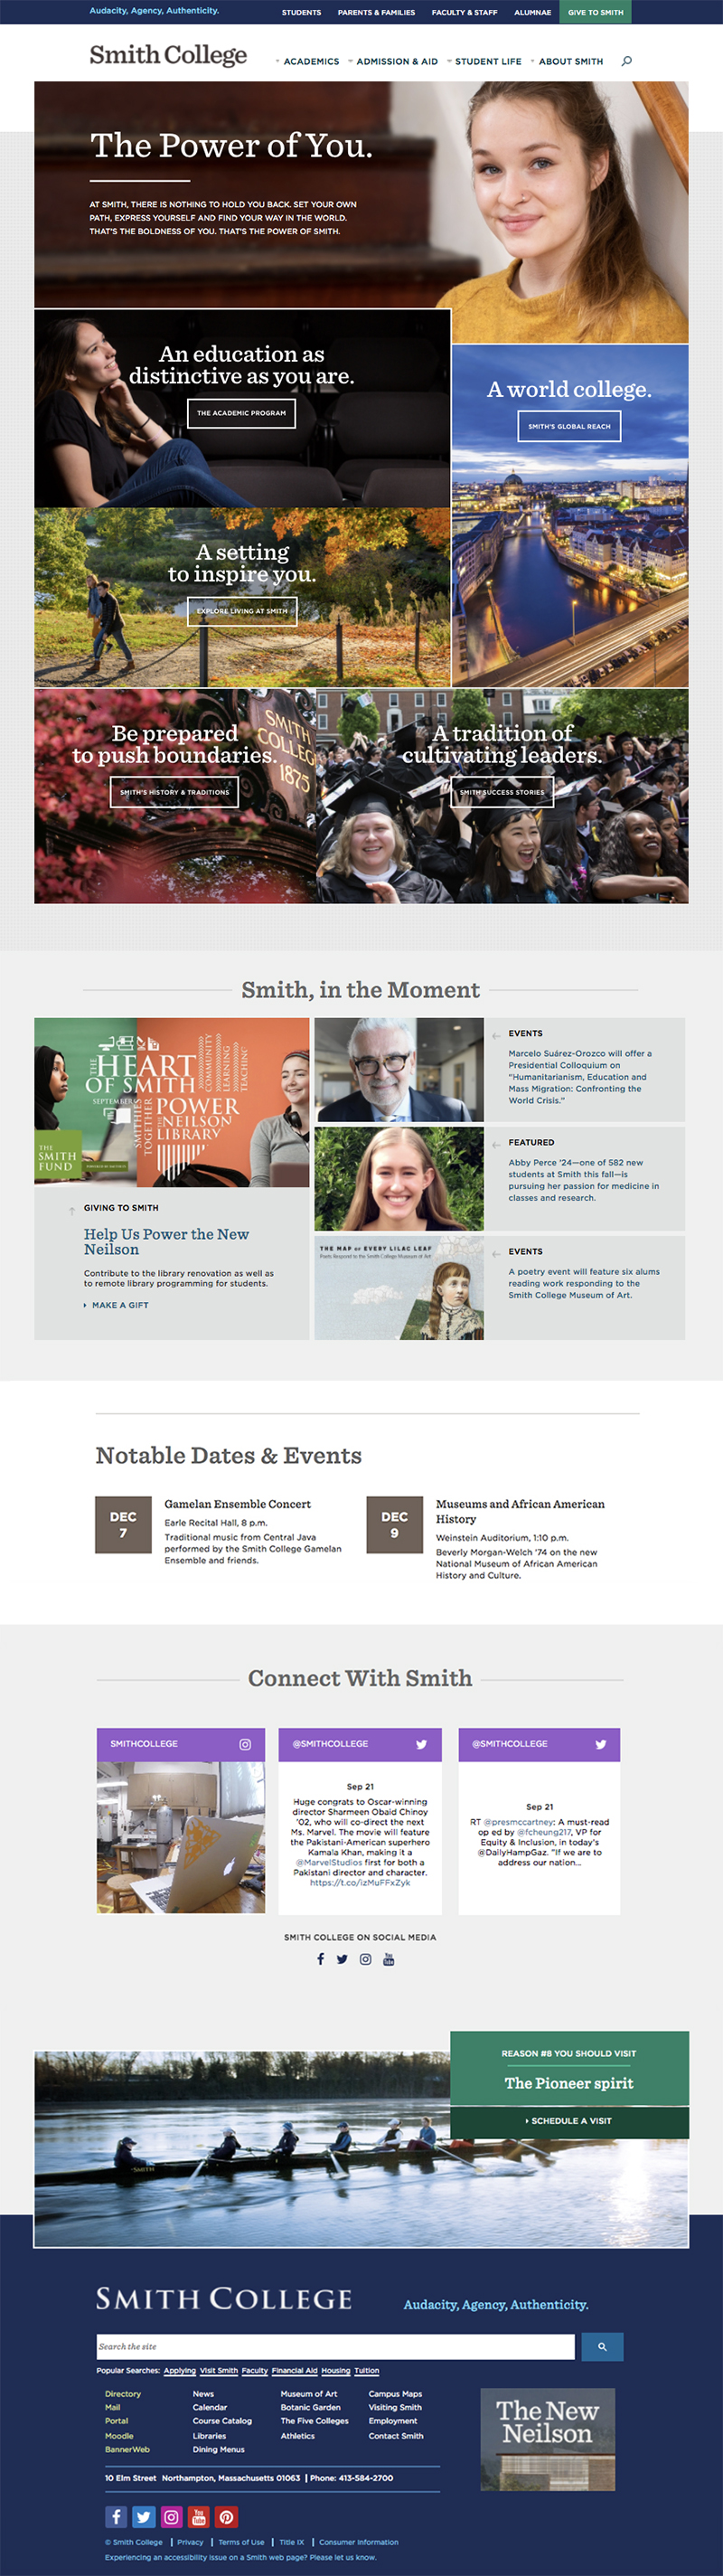 Image of homepage layout